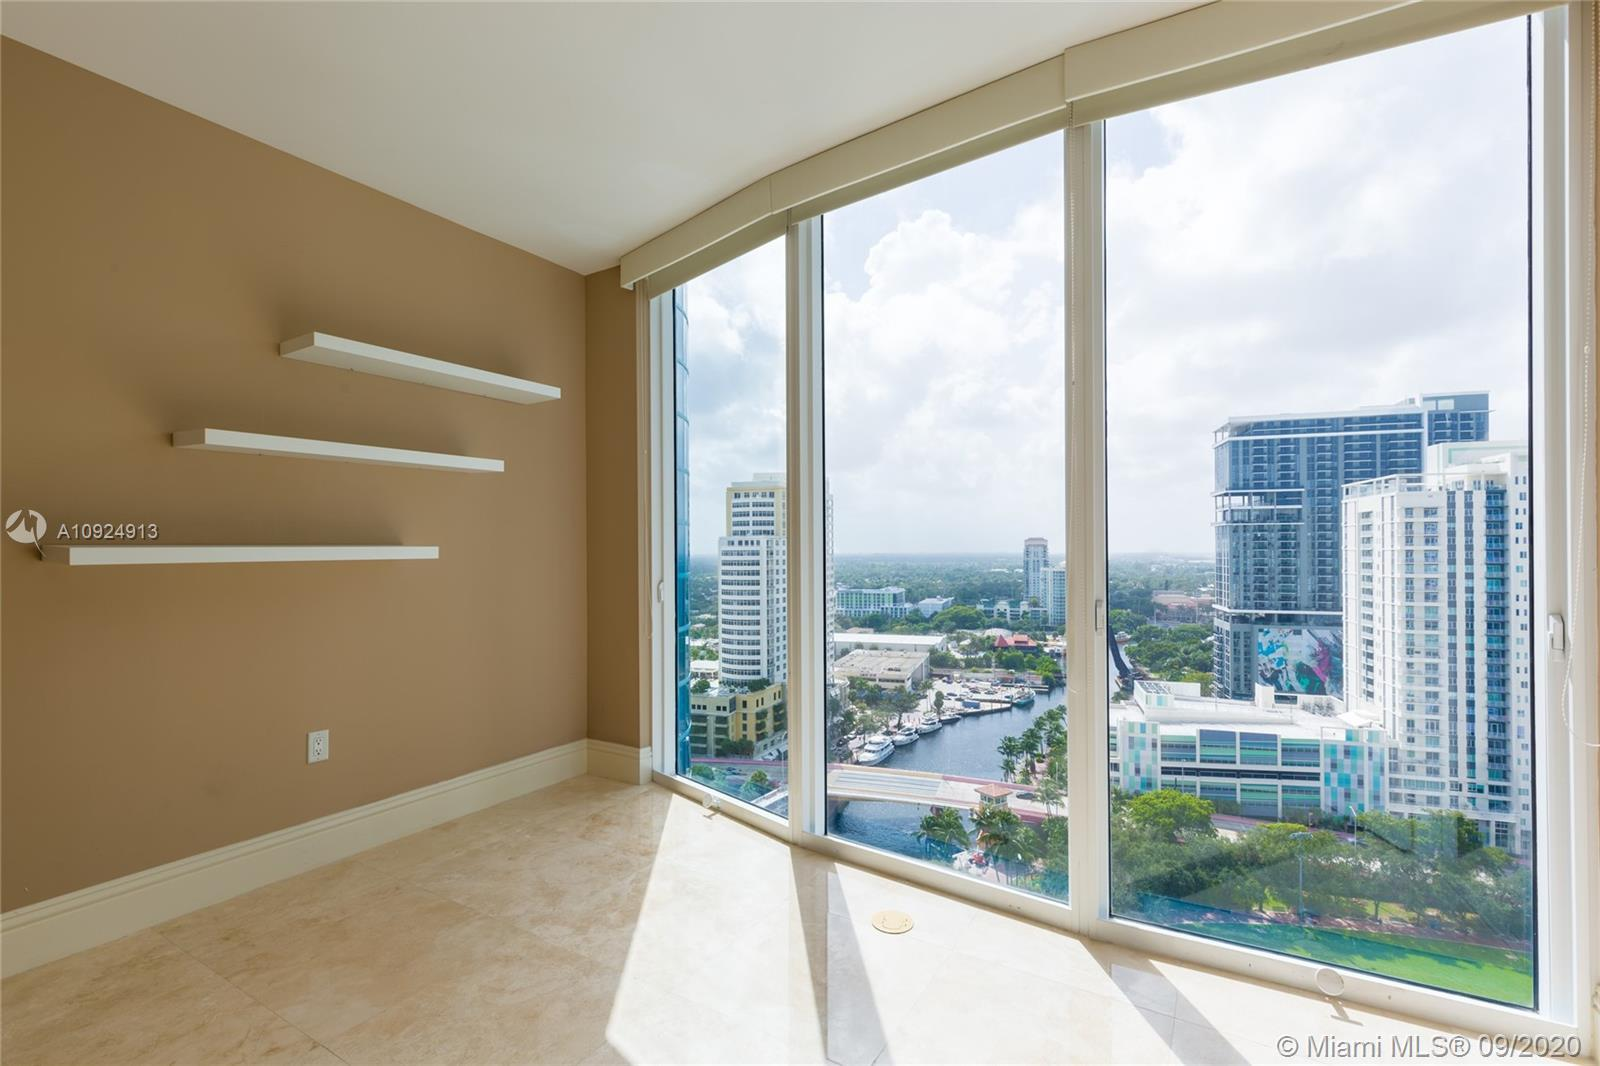 Welcome to your perfect urban riverfront home in Ft Lauderdale's landmark tower.  Located on the New